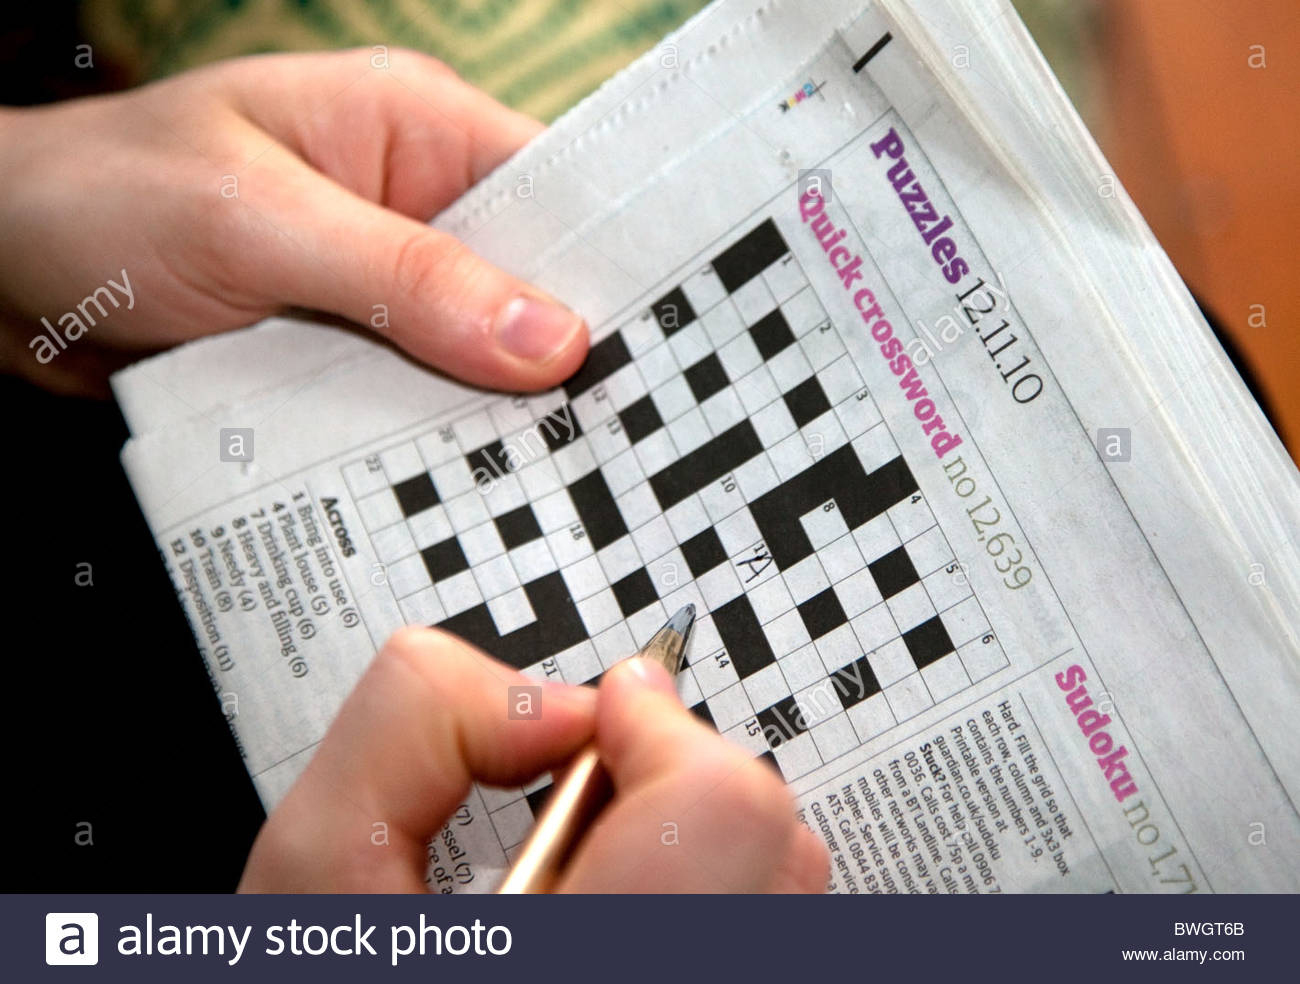 Solving A Quick Newspaper Crossword, London Stock Photo: 32946995 - Guardian Printable Quick Crossword